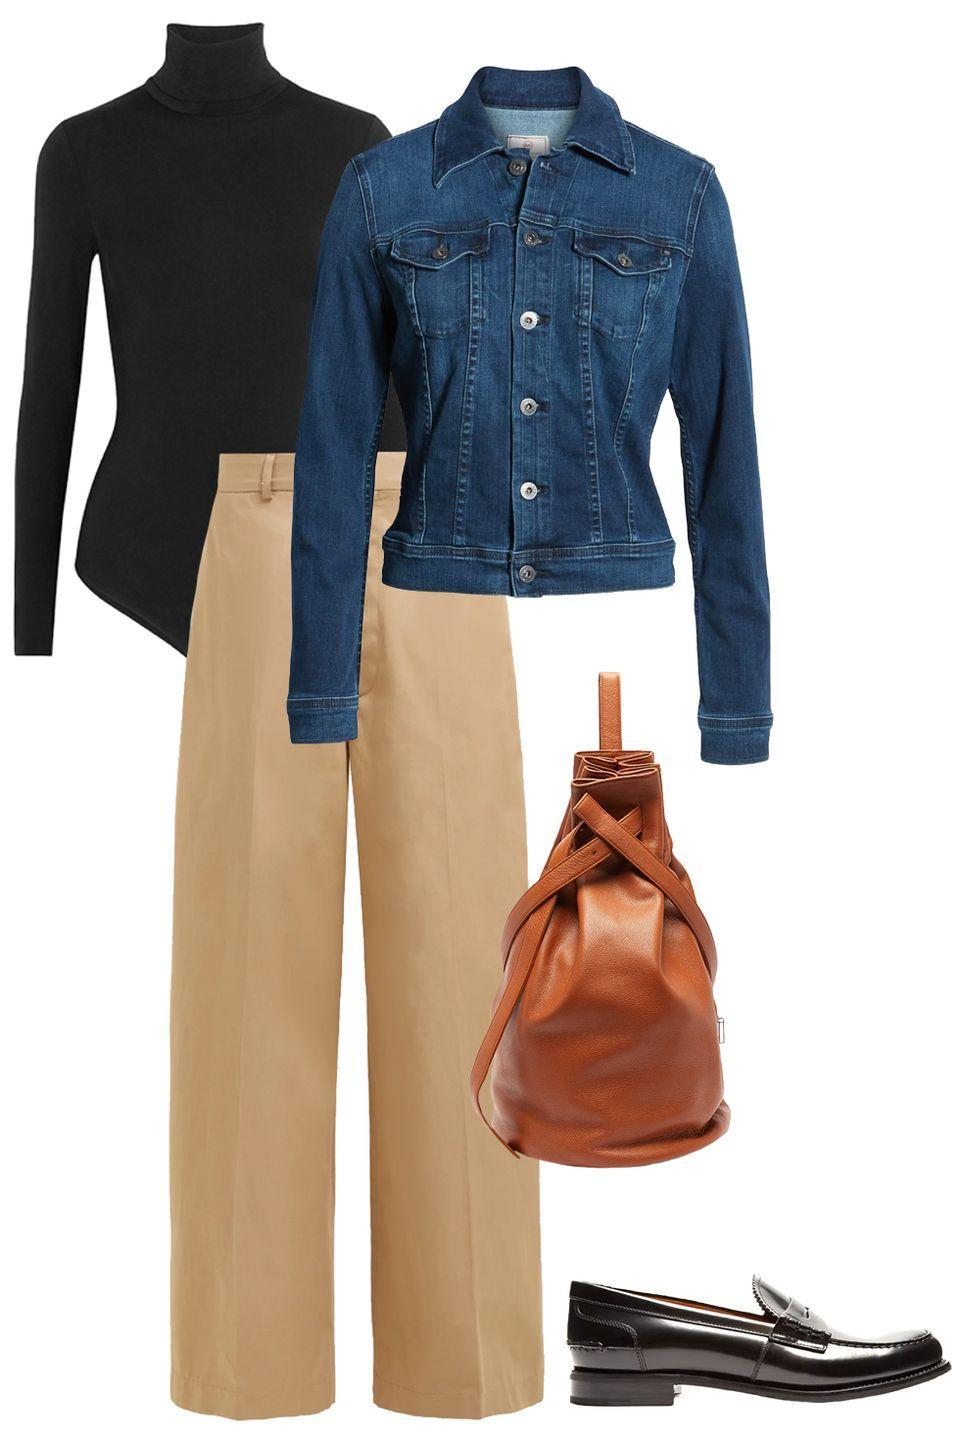 """<p>An off-duty wardrobe doesn't have to lack sophistication. A polished black turtleneck pairs perfectly with a pair of high-waisted chinos and a loafer. Parisian chic, oui? </p><p>Shop the pieces: <em><a href=""""https://www.net-a-porter.com/us/en/product/618045/Wolford/colorado-thong-bodysuit"""" rel=""""nofollow noopener"""" target=""""_blank"""" data-ylk=""""slk:Wolford Colorado Bodysuit"""" class=""""link rapid-noclick-resp"""">Wolford Colorado Bodysuit</a>,</em>$250; <em><a href=""""https://www.matchesfashion.com/us/products/Raey-Front-seam-cotton-and-linen-blend-chino-trousers-1349566"""" rel=""""nofollow noopener"""" target=""""_blank"""" data-ylk=""""slk:Raey Trousers"""" class=""""link rapid-noclick-resp"""">Raey Trousers</a>, </em>$266 (similar); <em><a href=""""https://www.tsatsas.com/product/kilo-kit-bag-calfskin-leather-burgundy/"""" rel=""""nofollow noopener"""" target=""""_blank"""" data-ylk=""""slk:TSATSAS Bag"""" class=""""link rapid-noclick-resp"""">TSATSAS Bag</a>,</em> $1,745.00; <em><a href=""""https://www.saksfifthavenue.com/product/ag-jeans-robyn-denim-jacket-0400013100675.html?dwvar_0400013100675_color=ALLIANCE"""" rel=""""nofollow noopener"""" target=""""_blank"""" data-ylk=""""slk:AG Jeans Jacket"""" class=""""link rapid-noclick-resp"""">AG Jeans Jacket</a>,</em> $215 (similar); <em><a href=""""https://www.matchesfashion.com/us/products/1206032?country=USA&rffrid=sem.Google.n=g.cid=1775440313.aid=73041766710.k=.mty=.d=c.adp=1o19.cr=343457940208.tid=aud-429604269523:pla-565858824211.pid=1206032000008.ppid=565858824211.lpm=9060351.adty=pla.prl=en&utm_content=1206032000008&utm_term=565858824211.[value].&gclid=CjwKCAiAmNbwBRBOEiwAqcwwpeS9_VaBvOUHV0gImt4Xj7Mq2ZKpGG3PnrPdu06Ok1Ua6kZYqBwIaxoCXrEQAvD_BwE&gclsrc=aw.ds"""" rel=""""nofollow noopener"""" target=""""_blank"""" data-ylk=""""slk:Church's Penny Loafers"""" class=""""link rapid-noclick-resp"""">Church's Penny Loafers</a>,</em> $505</p>"""